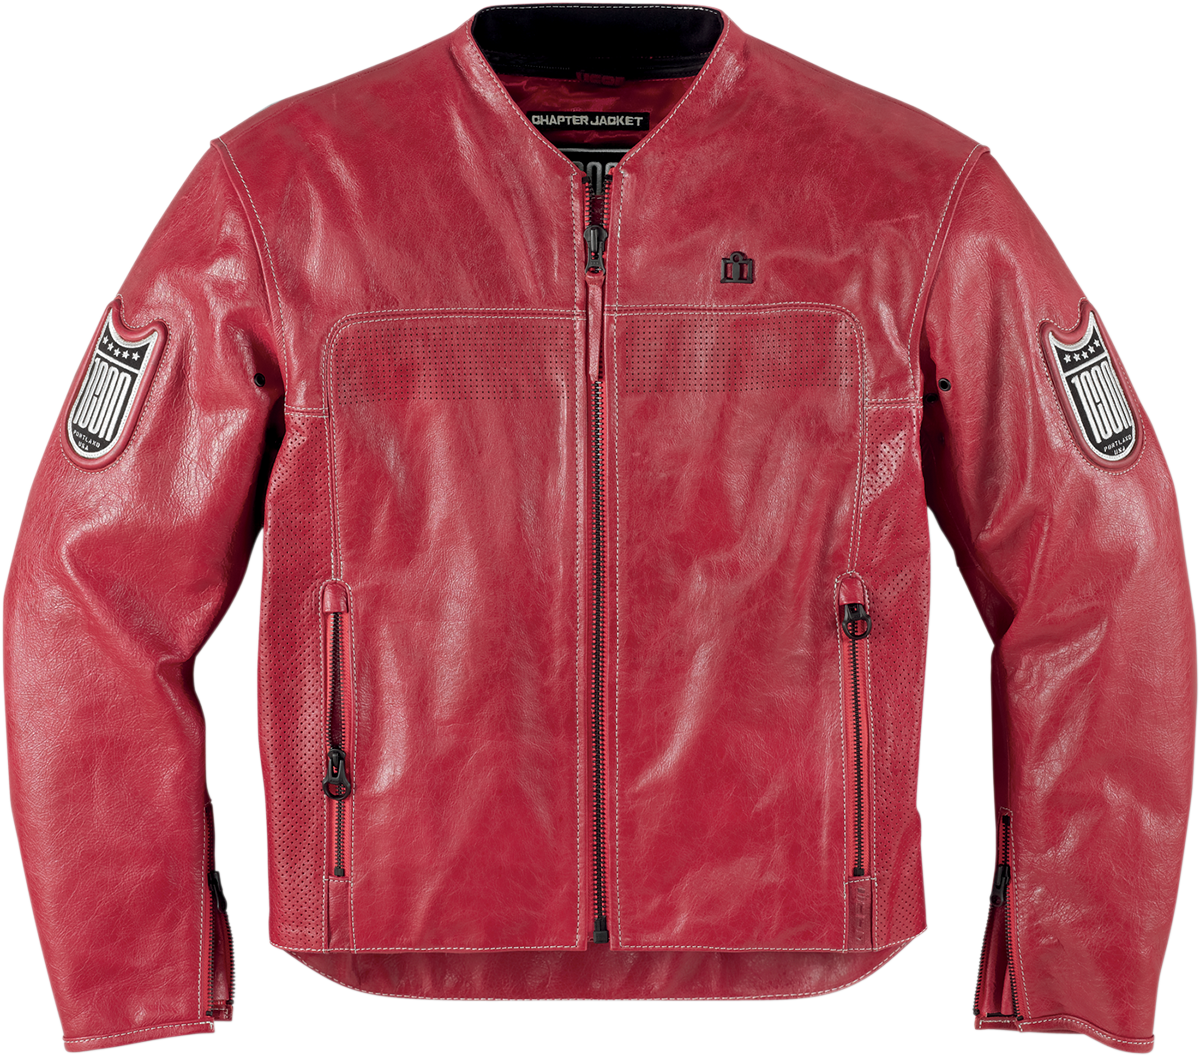 Icon 1000 Chapter Jacket Harmonic Red Products Ride